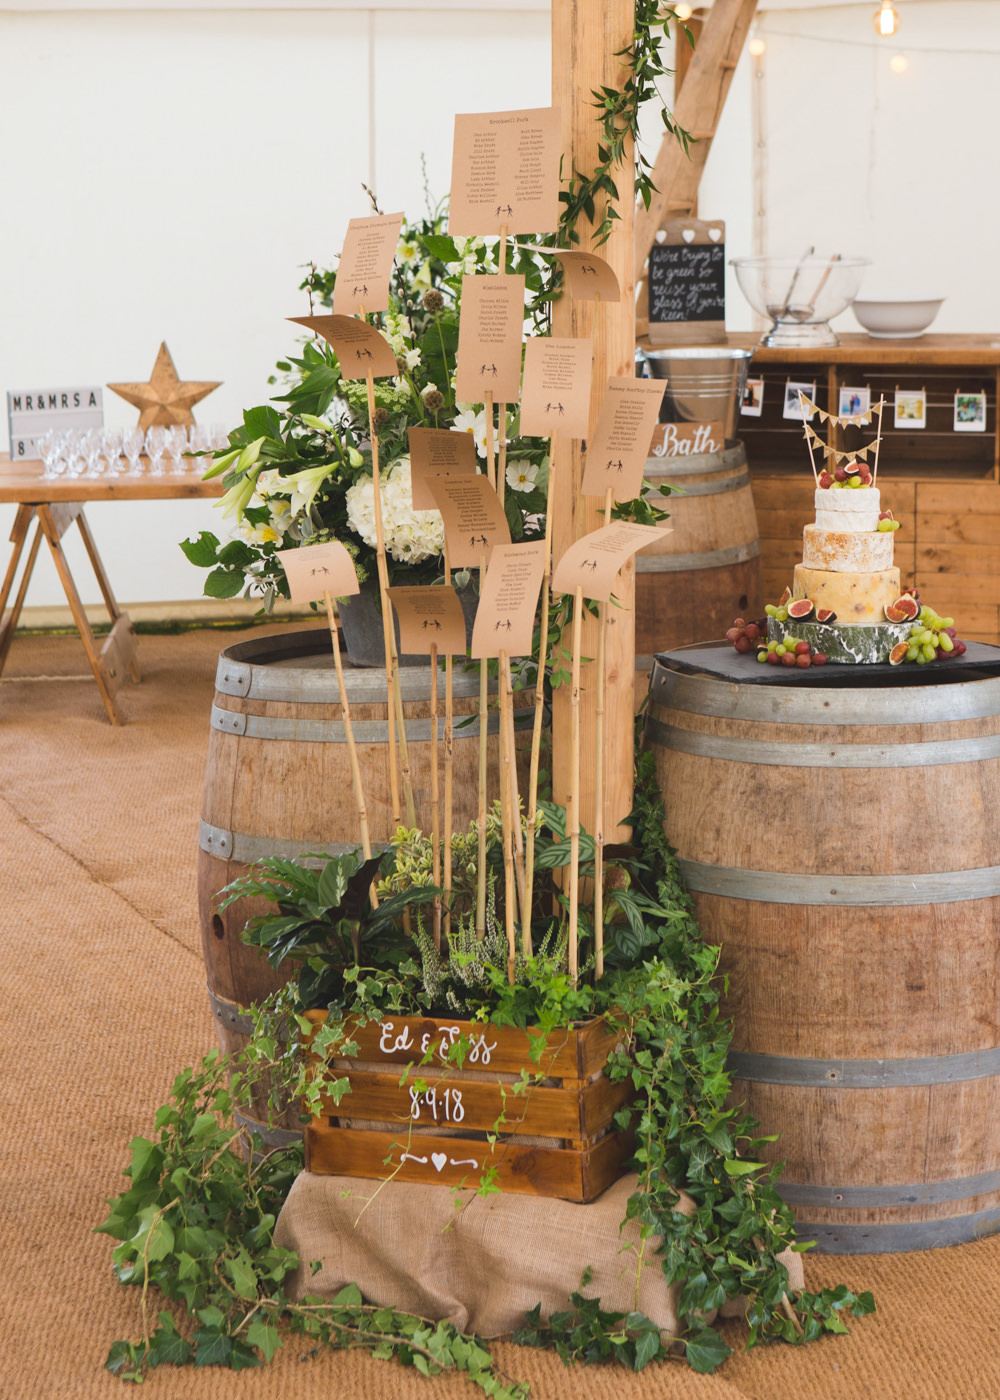 Seating Plan Table Chart Sticks Wooden Barrels Crate Greenery Foliage Airbnb Wedding Pickavance Weddings